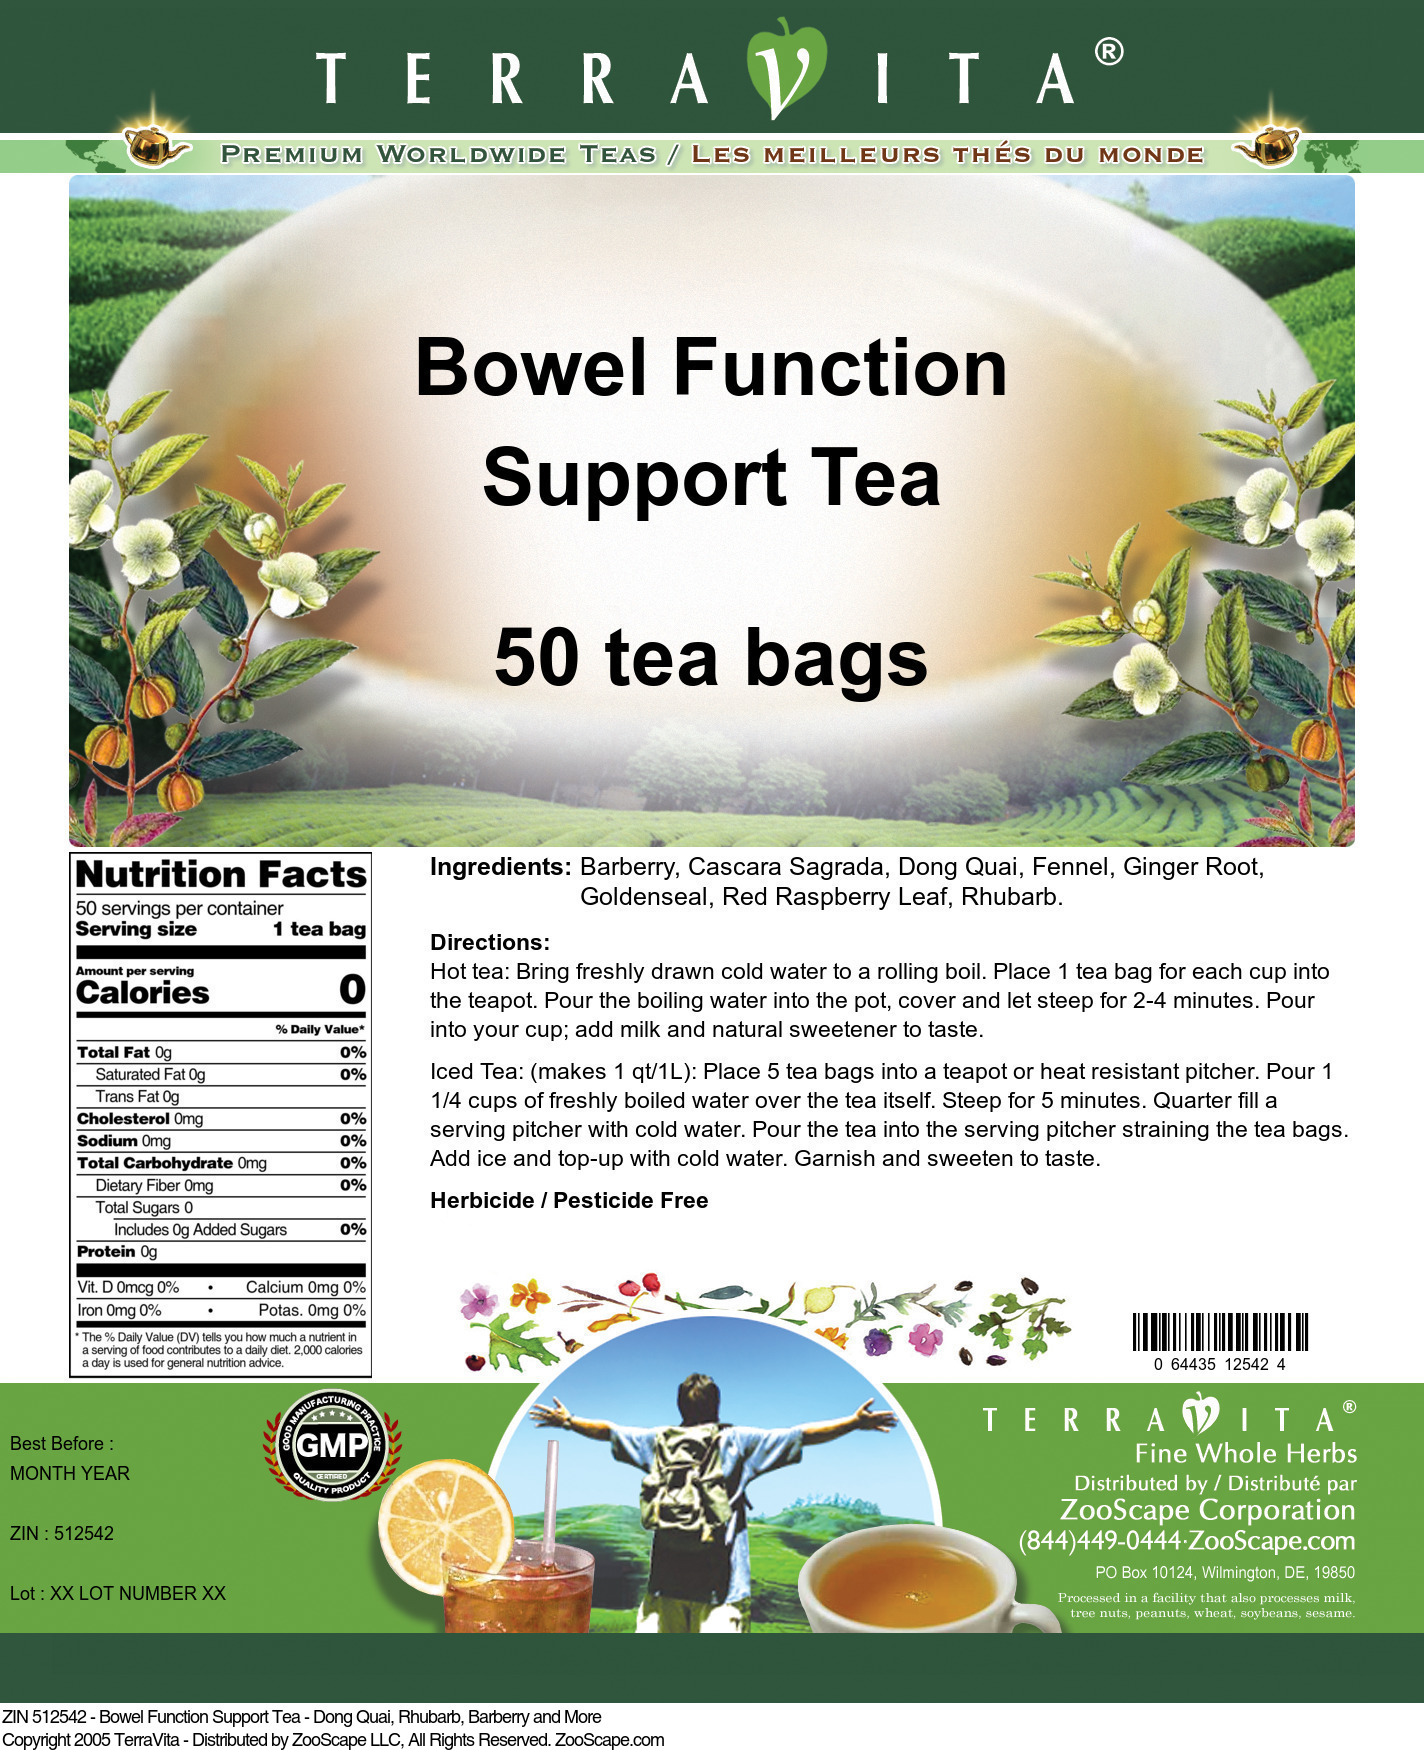 Bowel Function Support